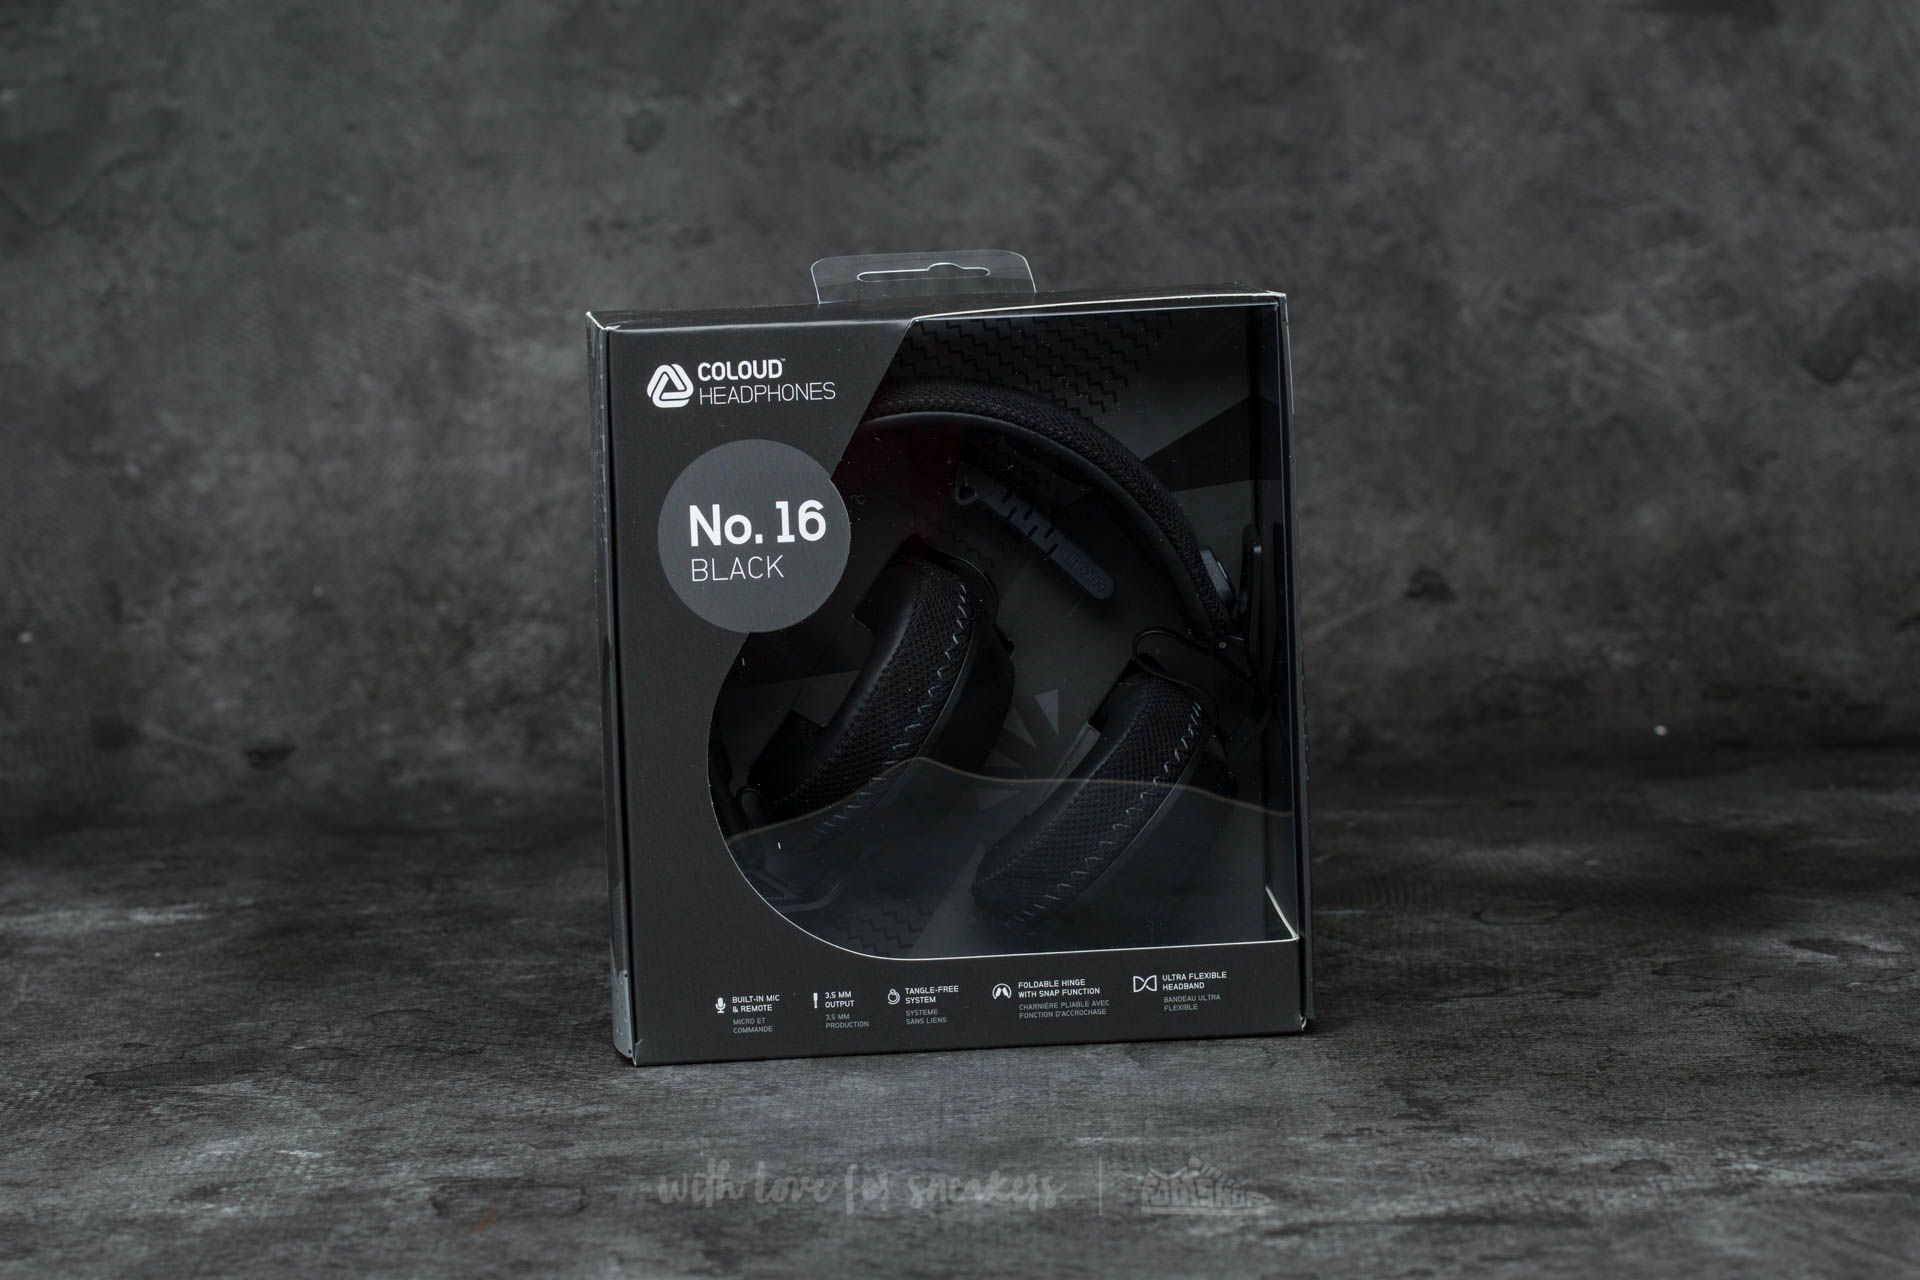 Coloud No. 16 Headphones Black-Grey - 12248